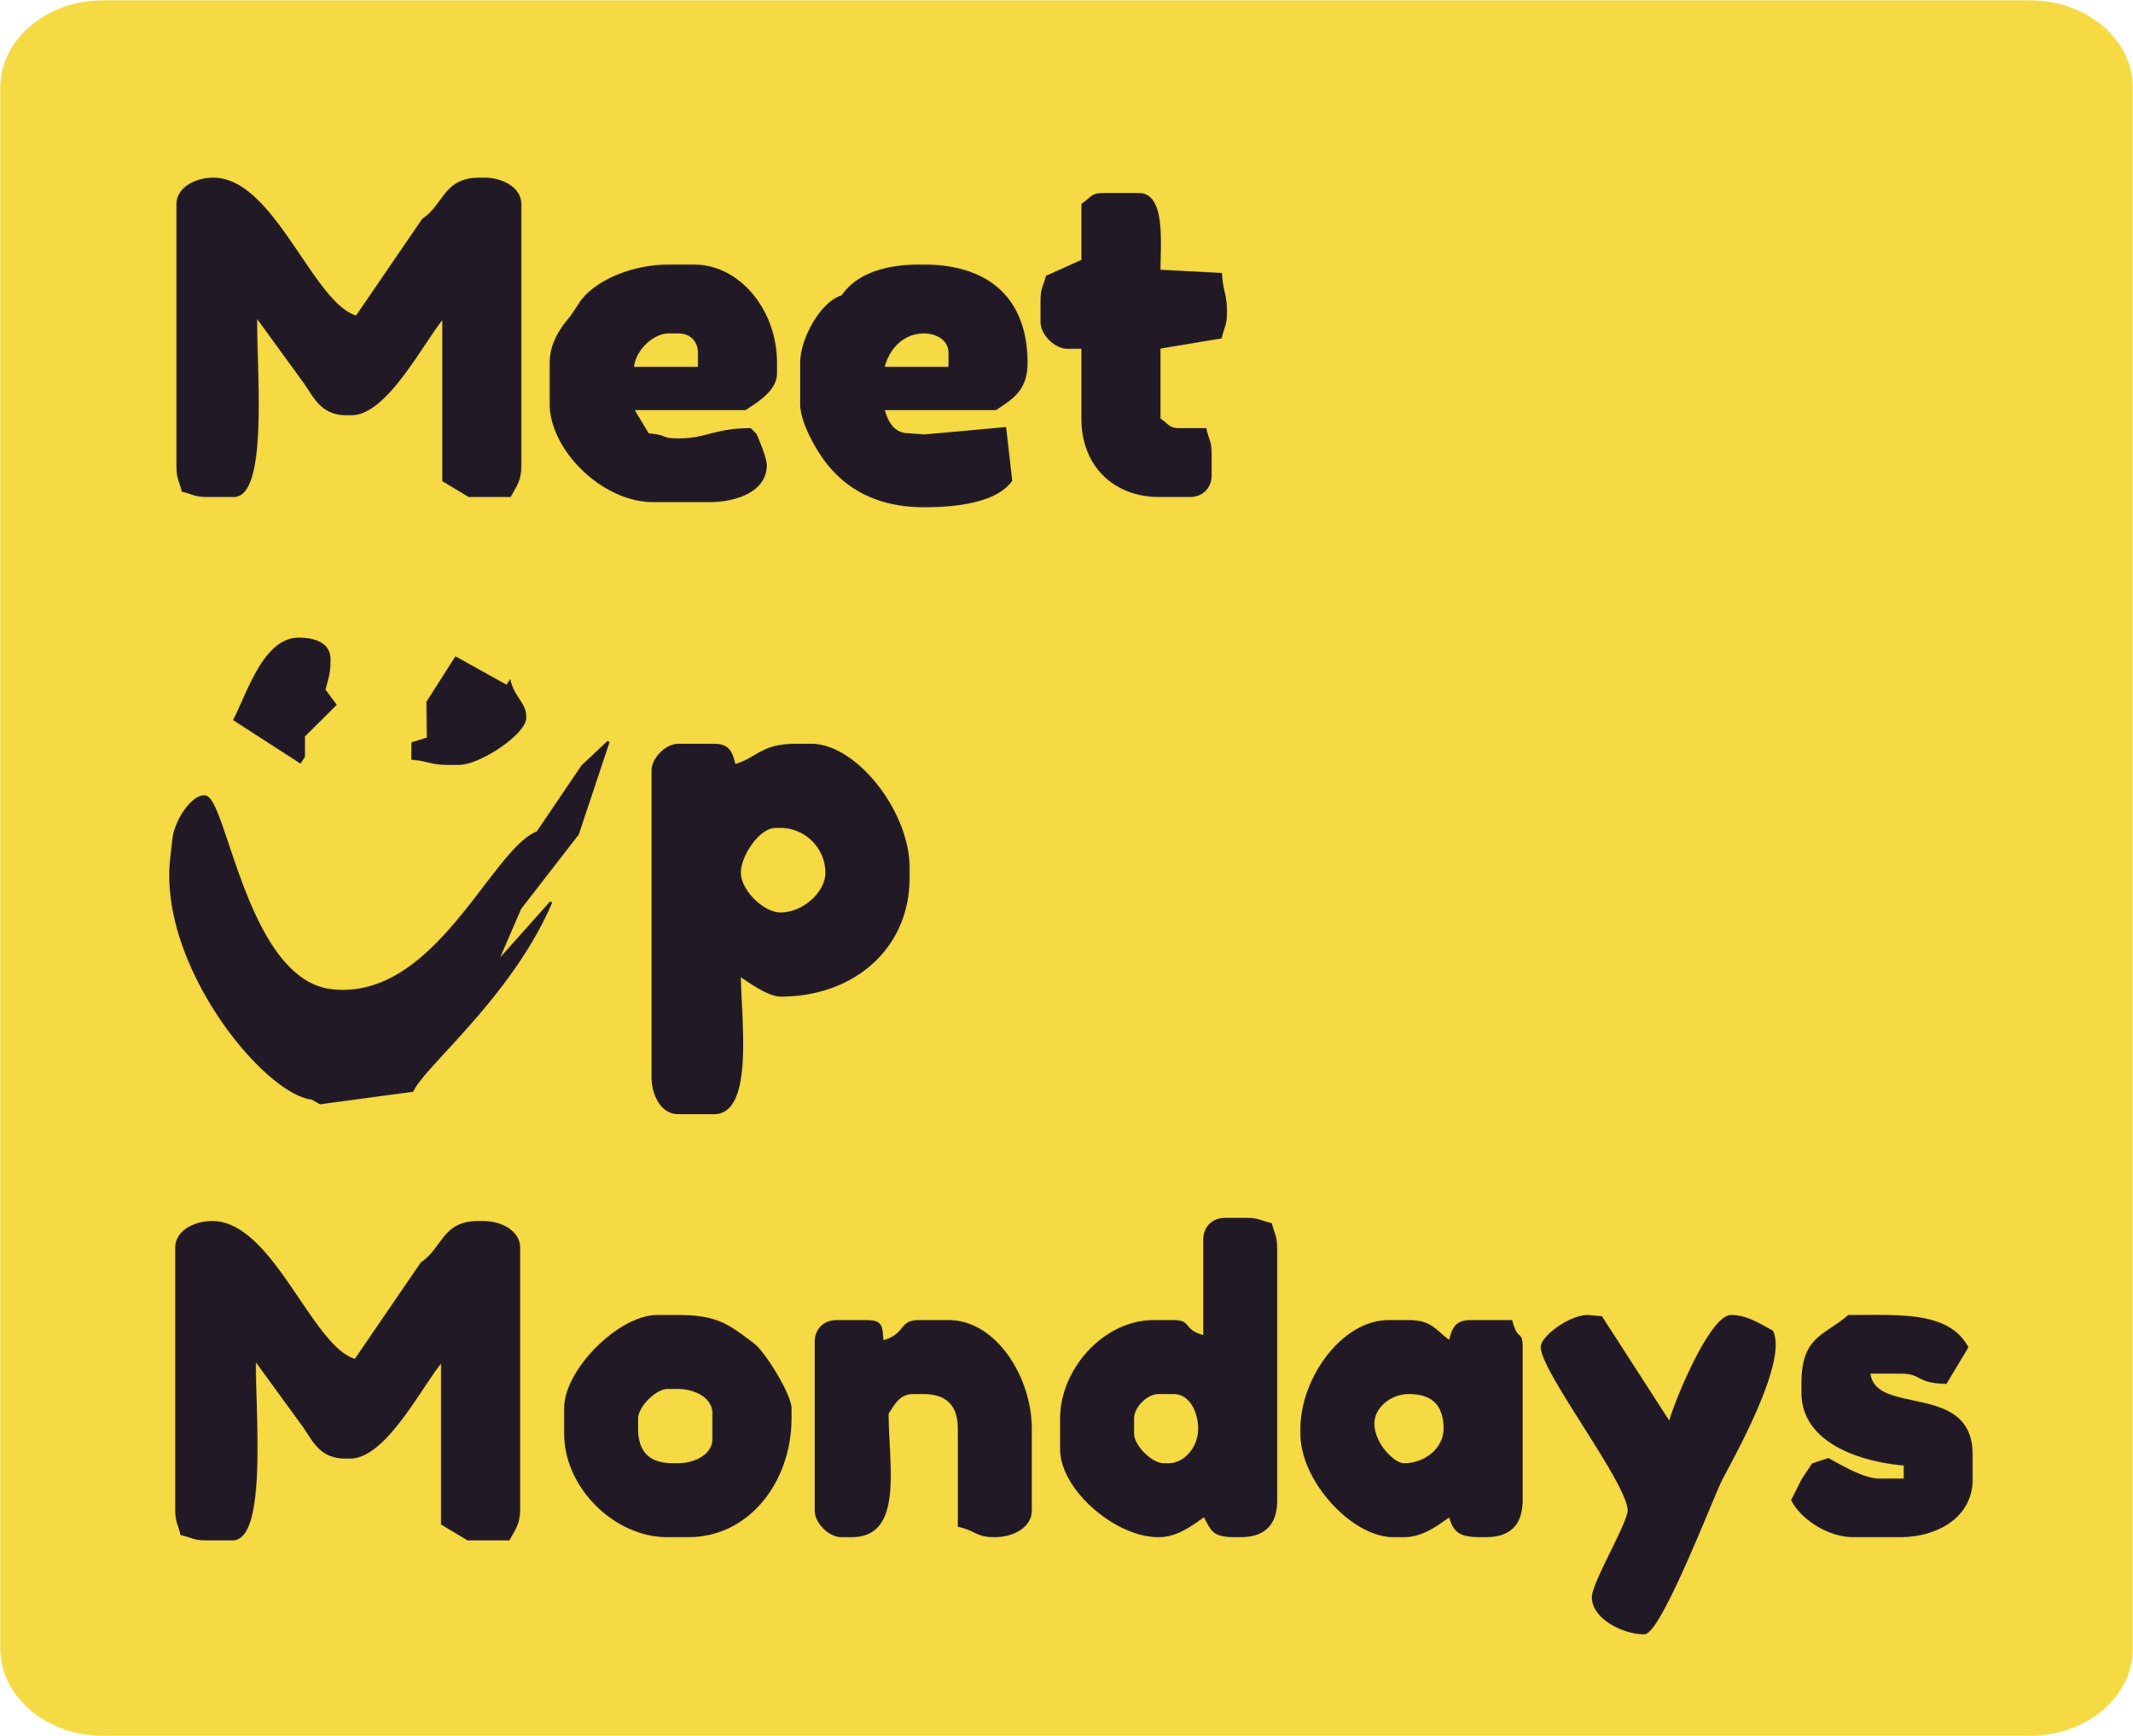 Meet up Mondays